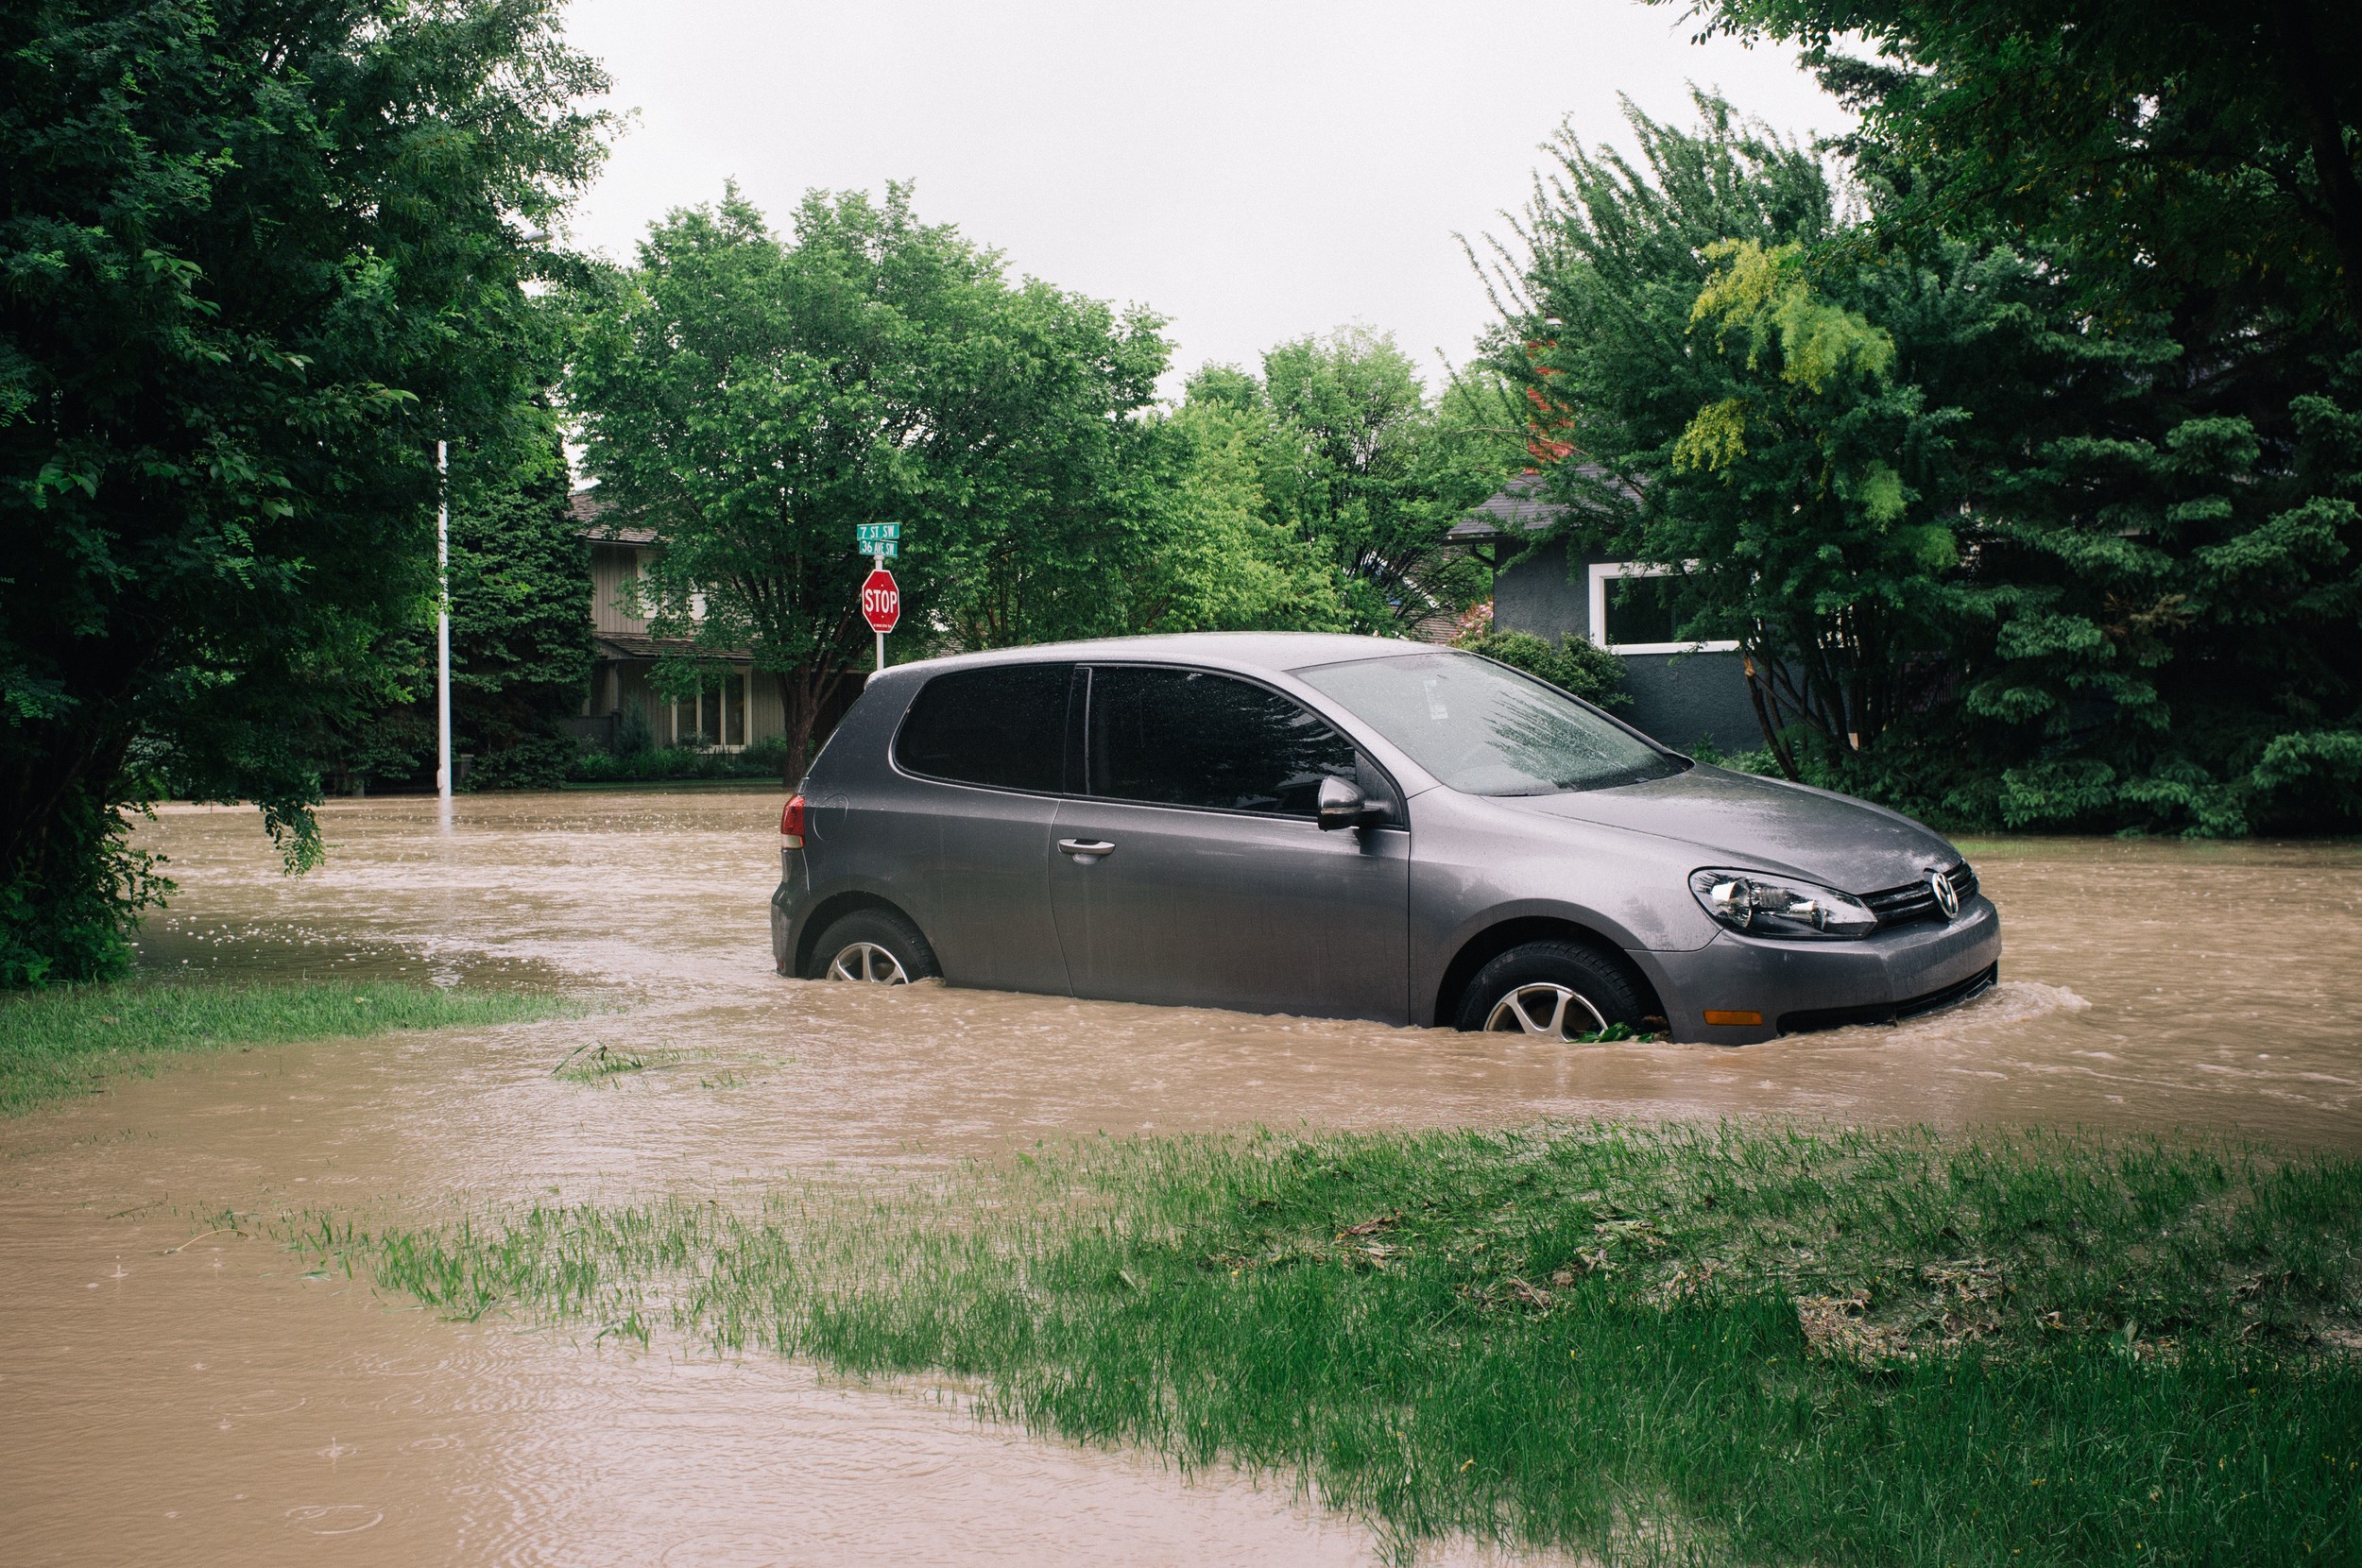 Swamped and abandoned VW Golf. 3700 block 7 Street SW.